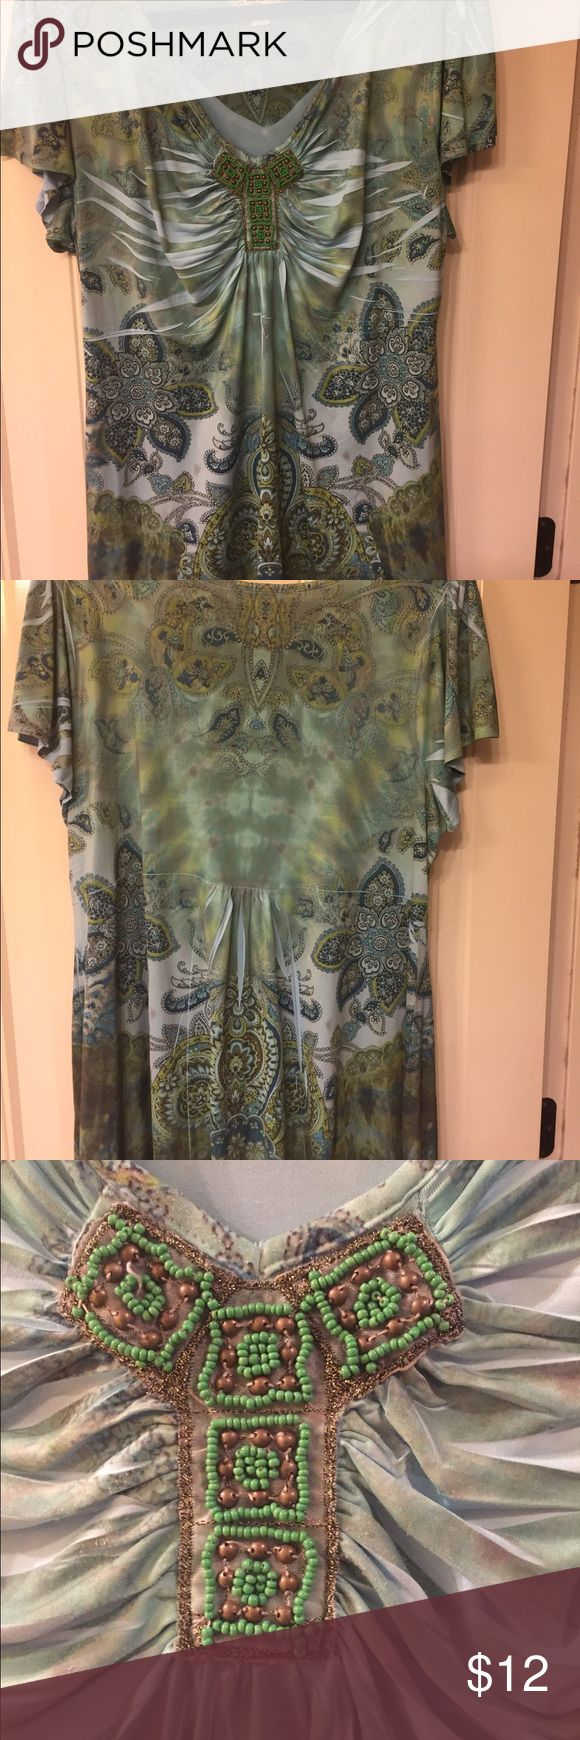 Short sleeve top Cute light blue and green short sleeve tunic top.  Perfect casual top for jeans. EUC live and let live Tops Tunics